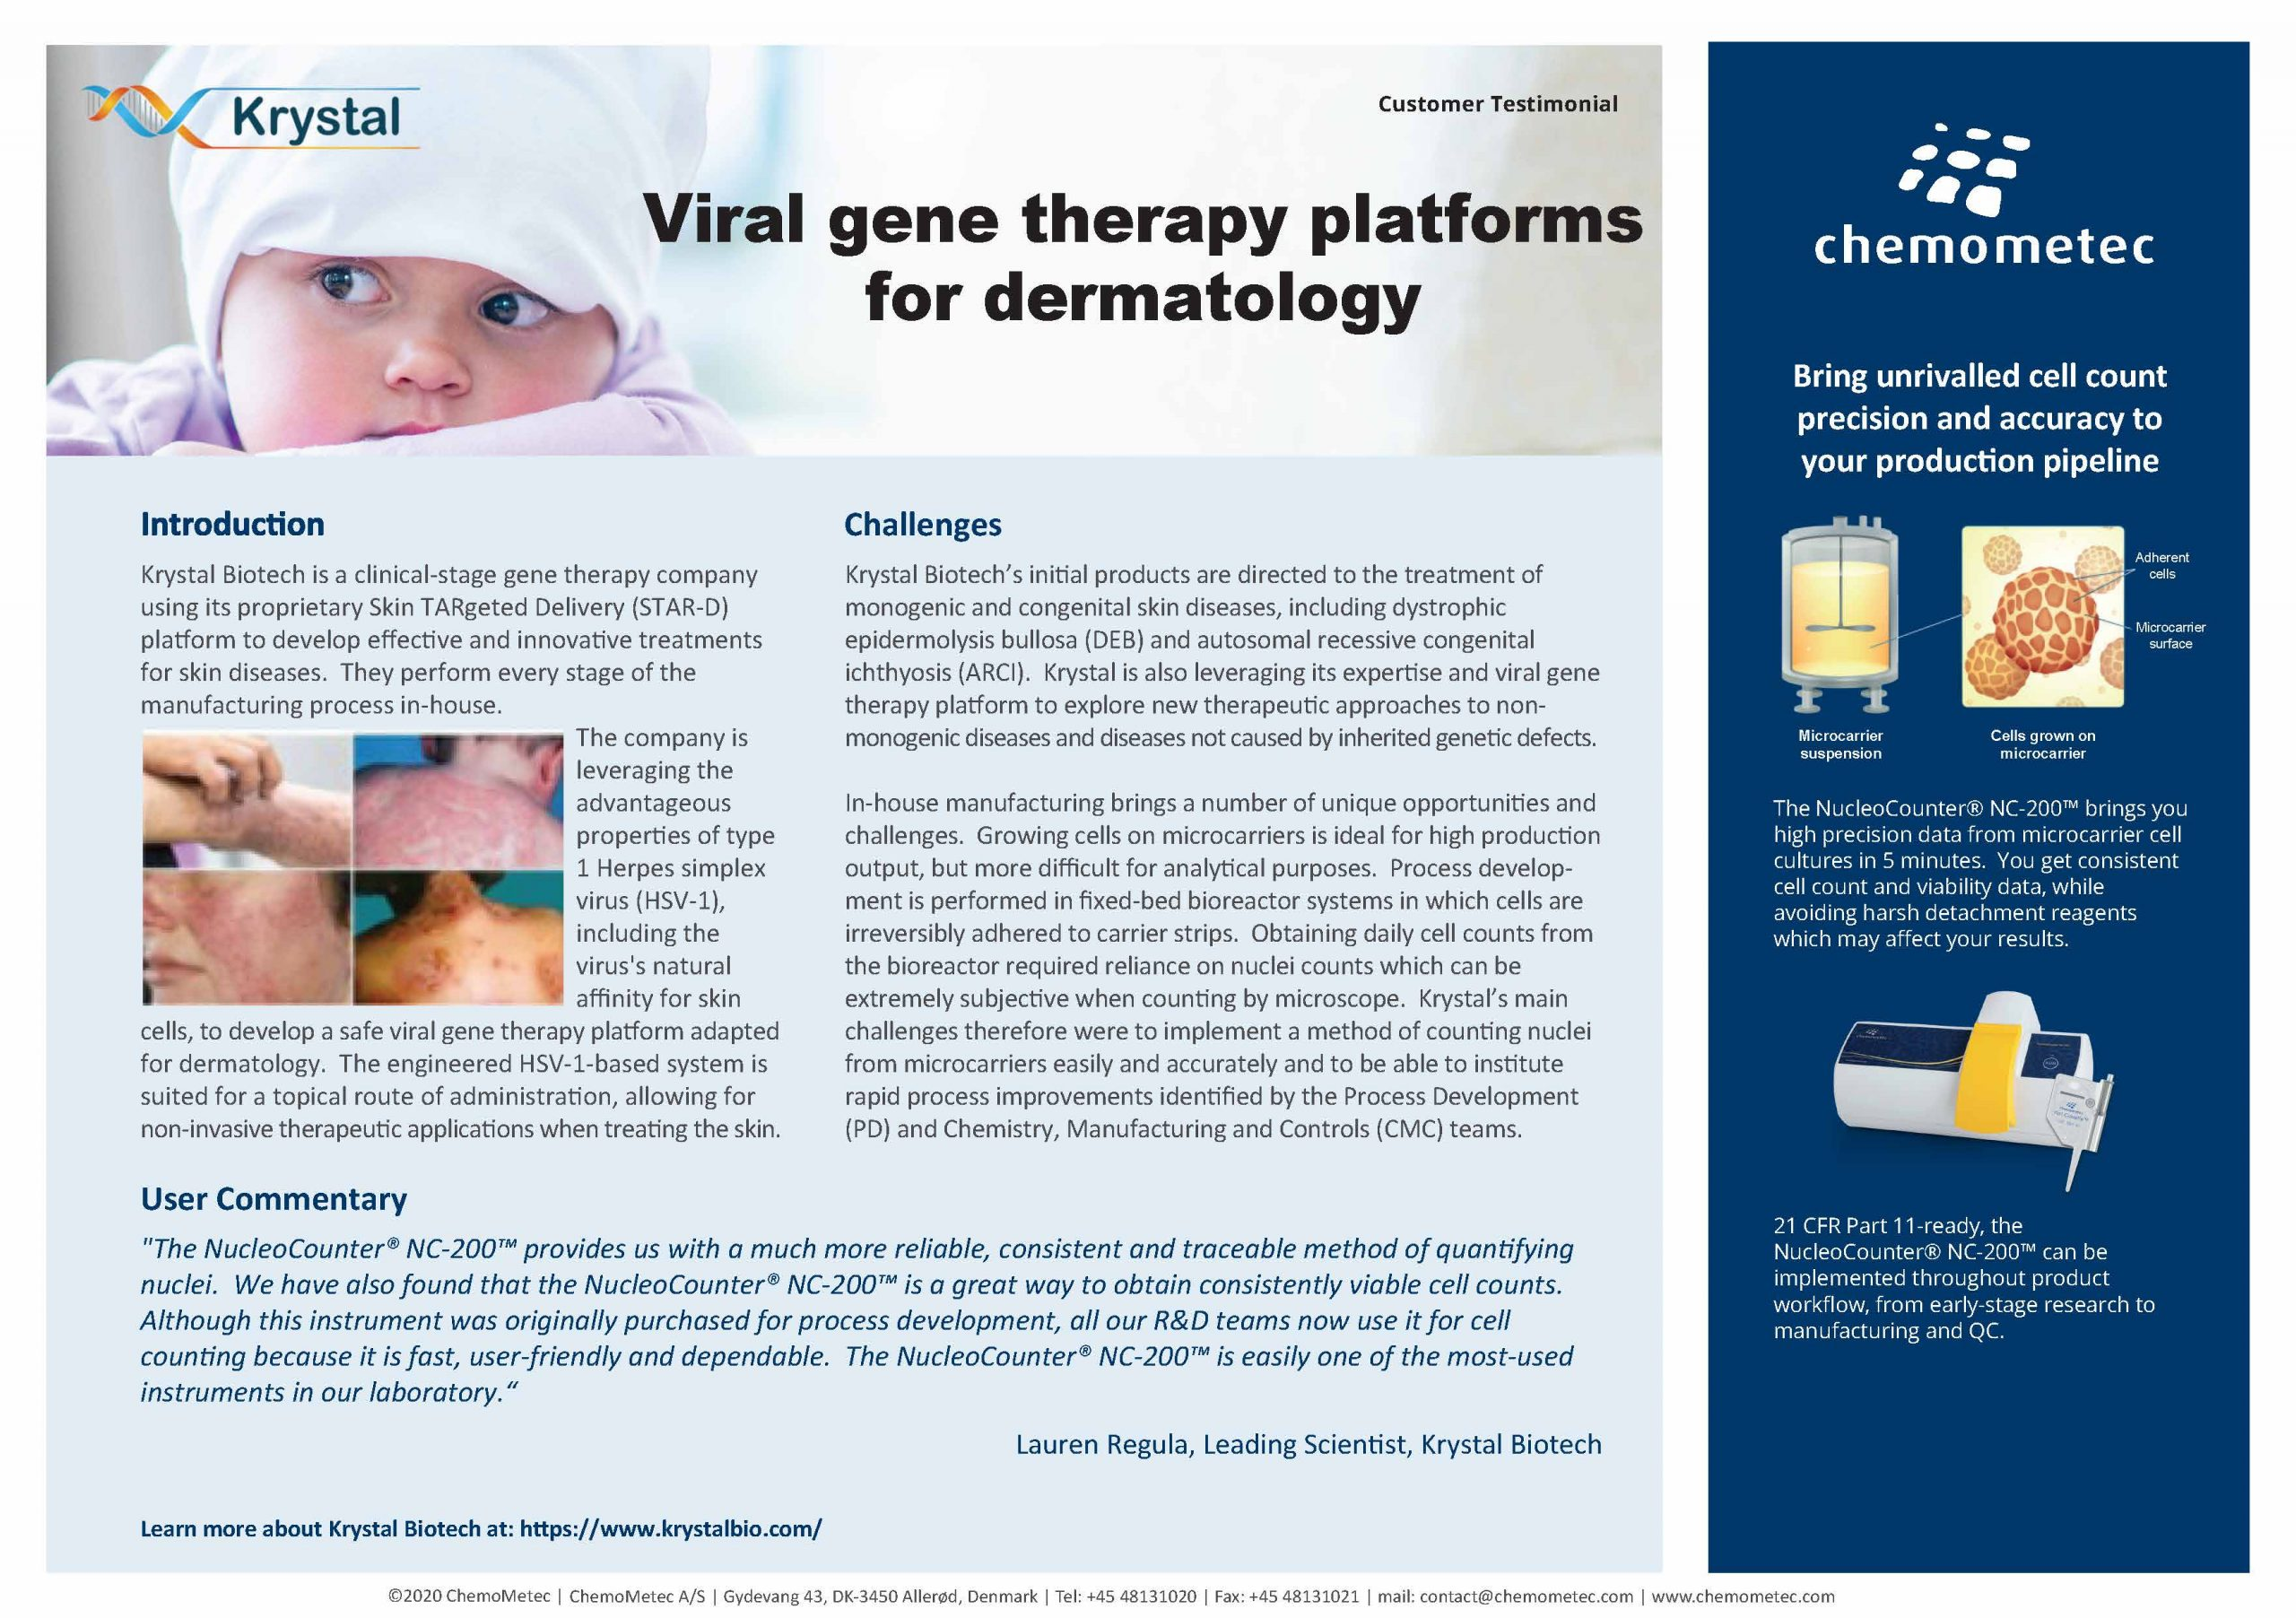 Testimonial of the NucleoCounter® NC-200™ automated cell counter at Krystal for viral gene therapy platforms